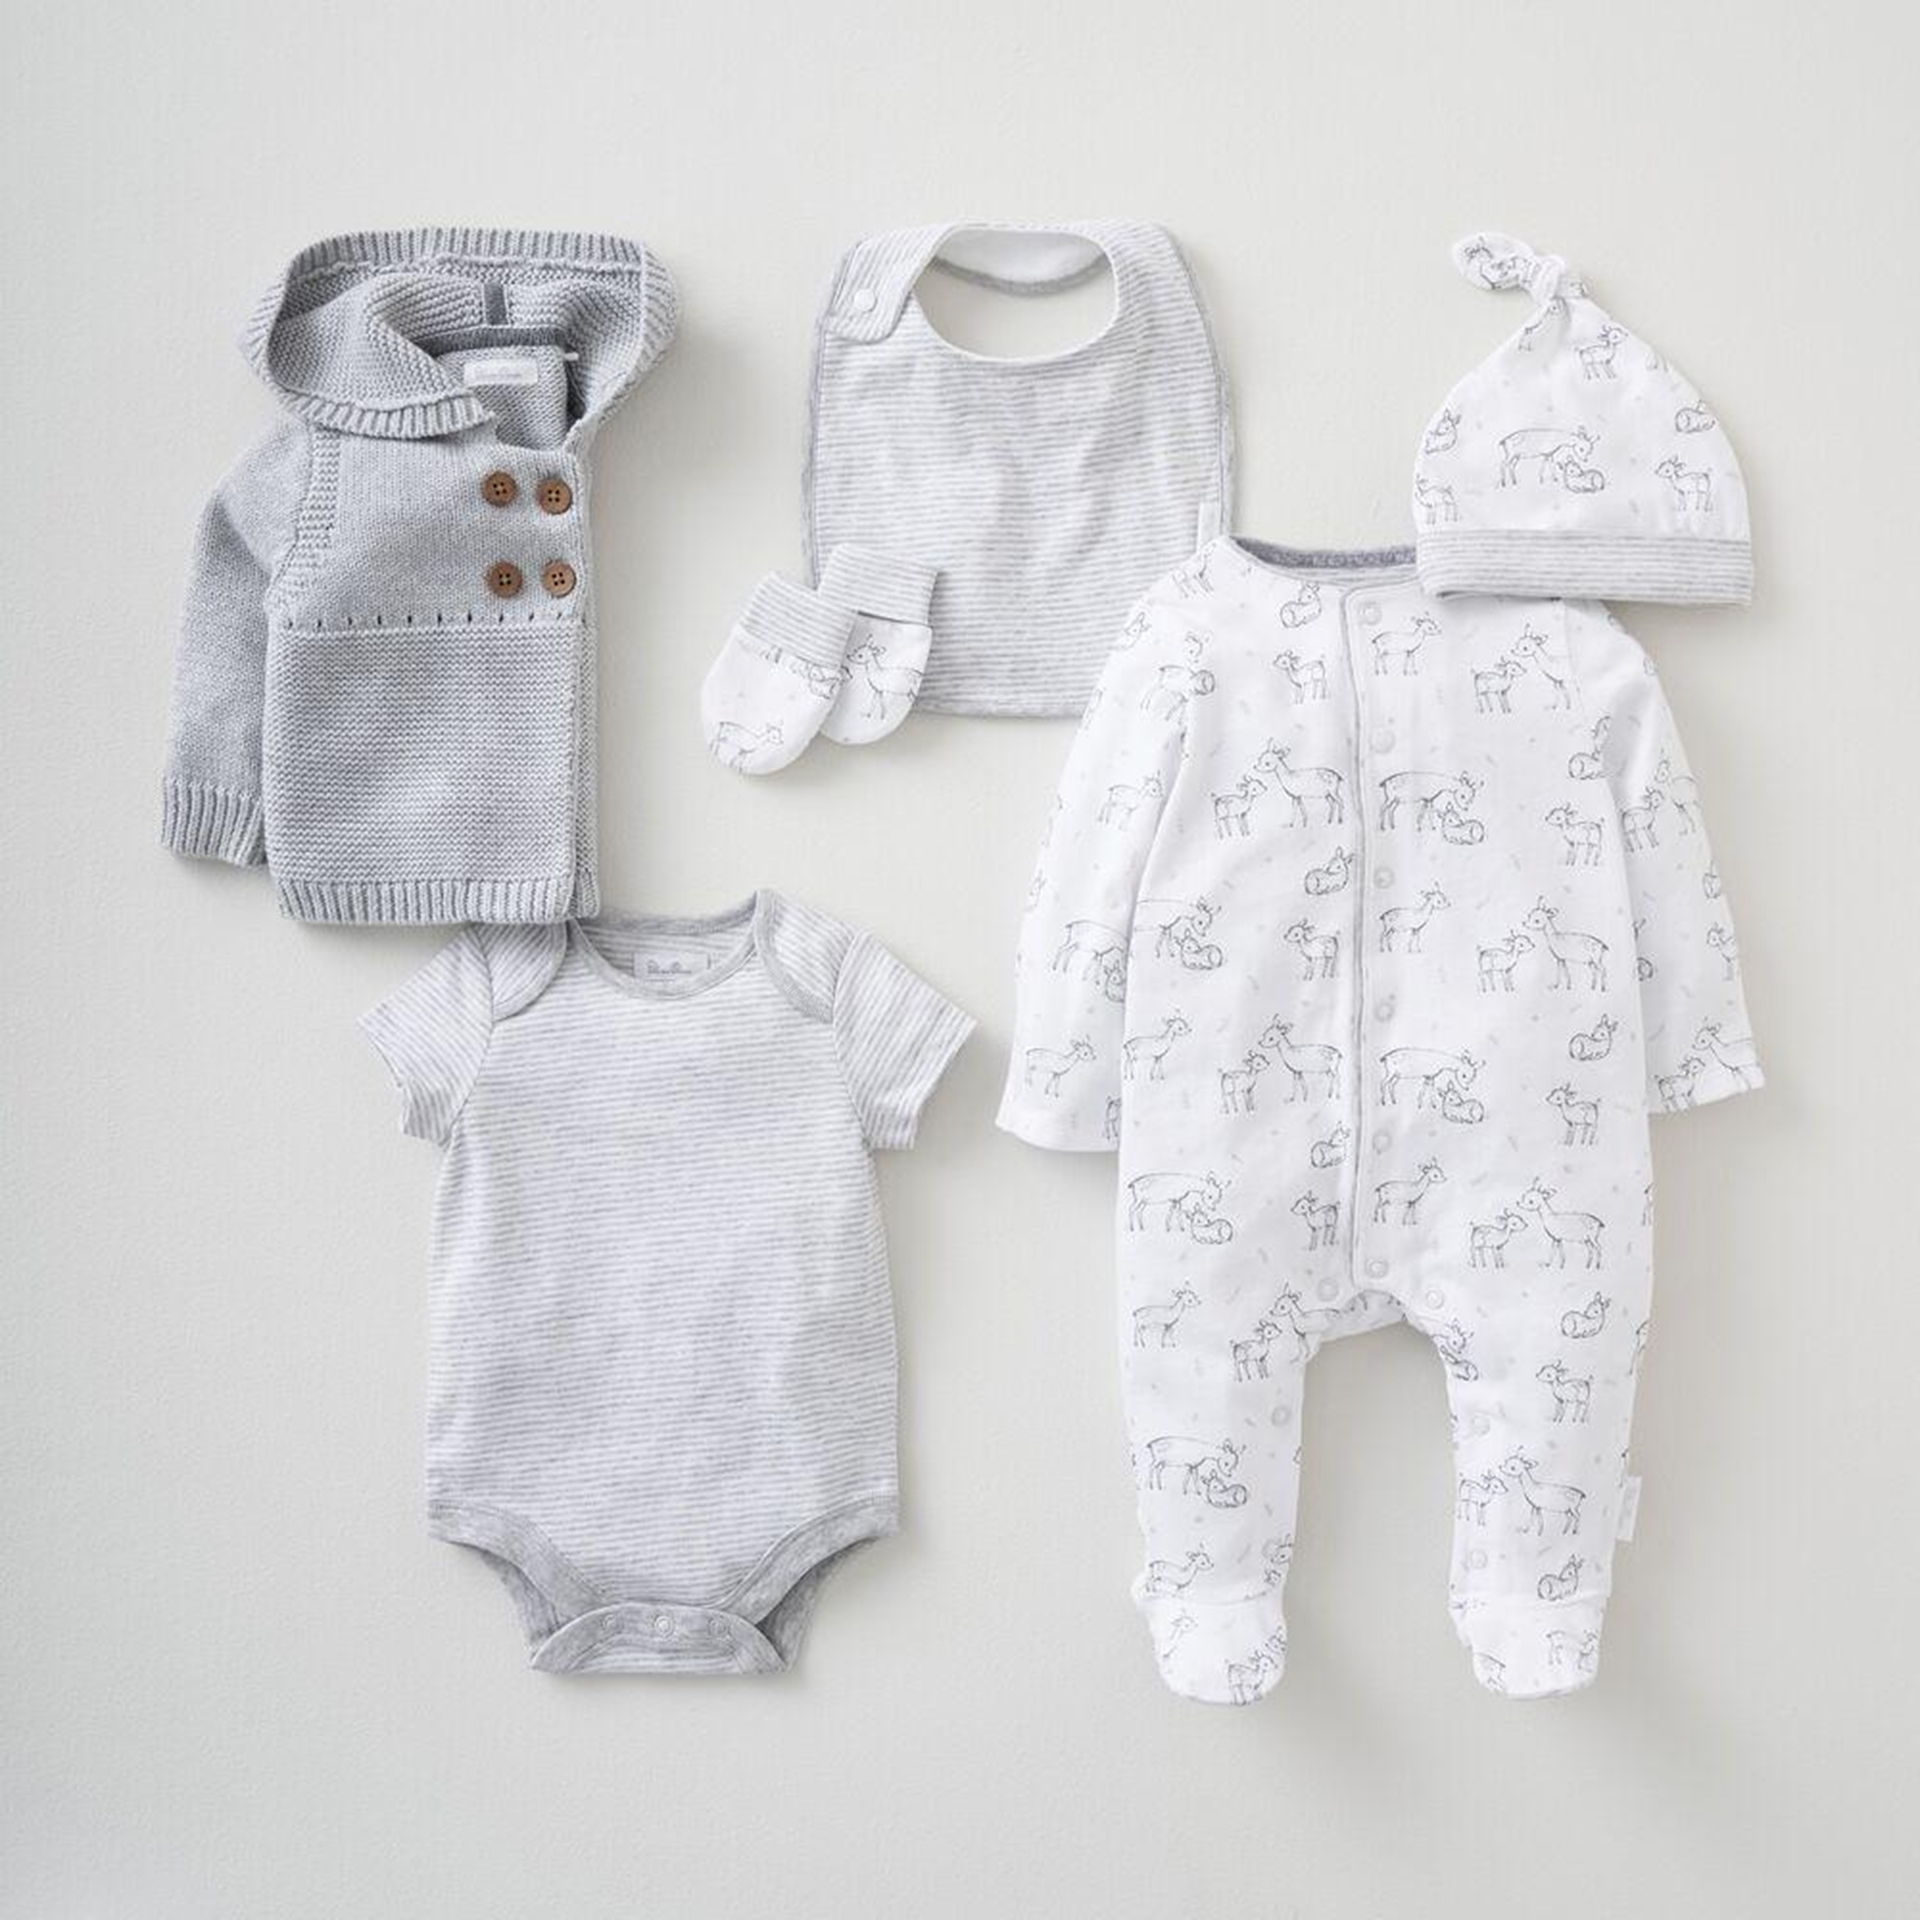 Top to Toe Gift Set 0-3 Months